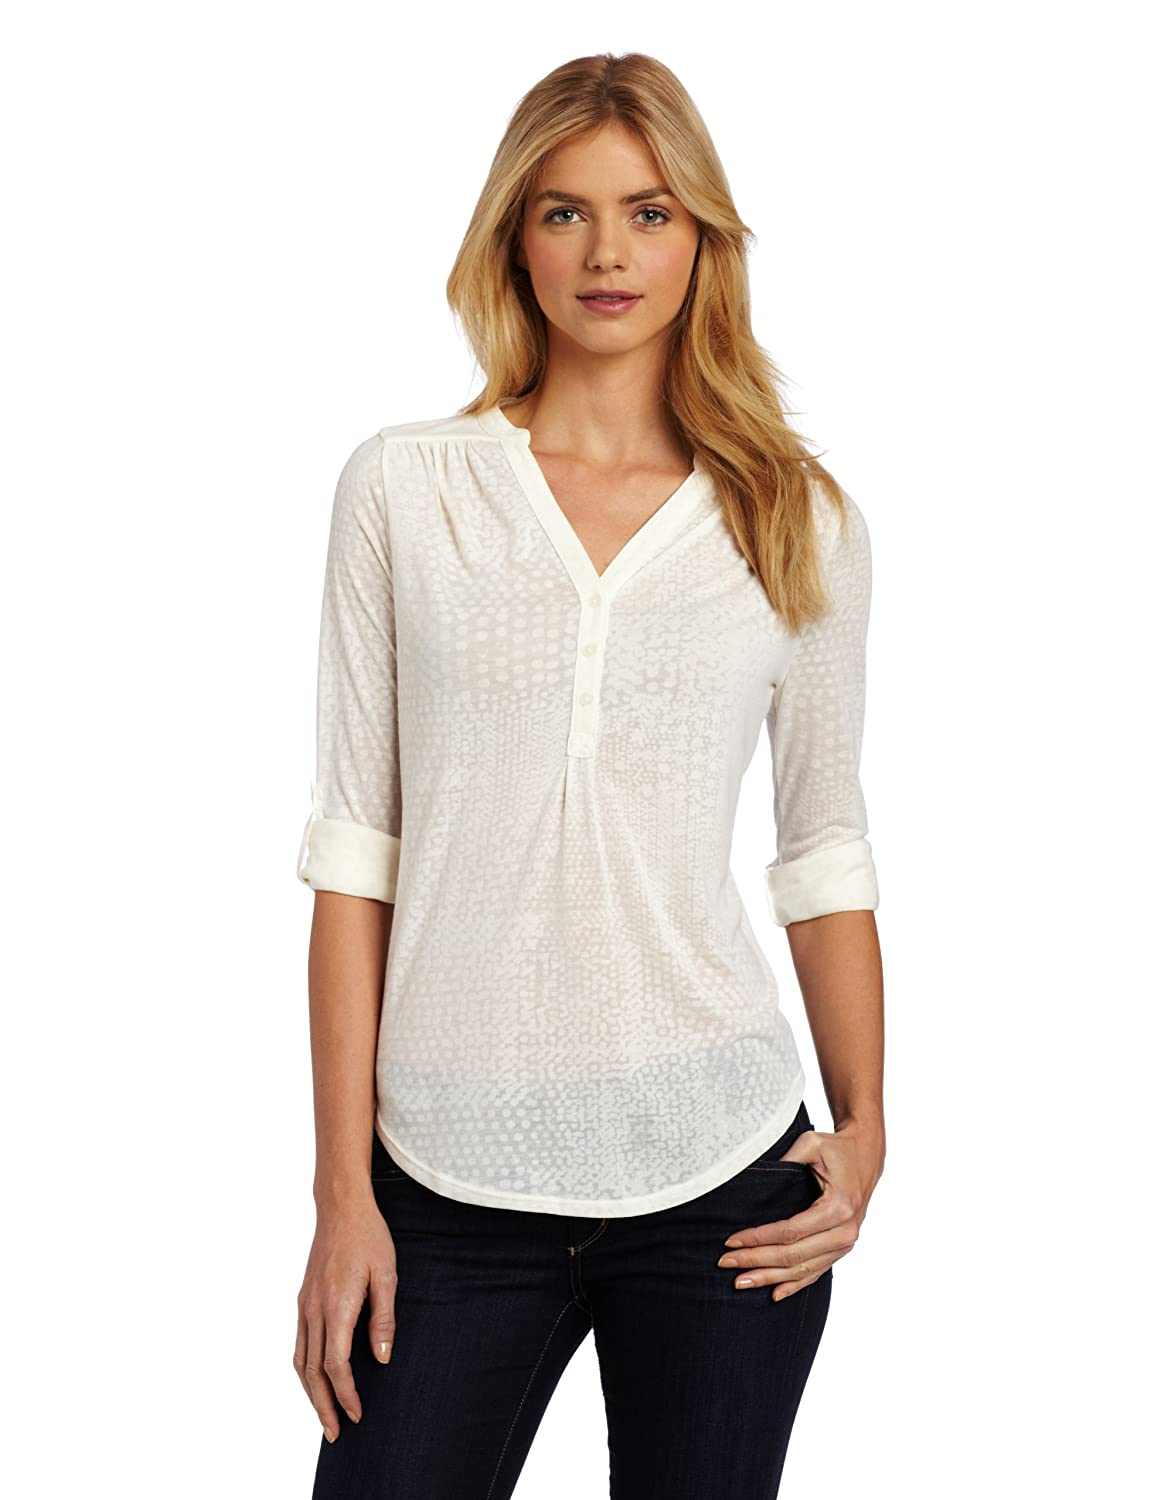 The womens Henley shirts are a group of styles that make use of the classic Henley polo placket while being tops that are definitely for women. These styles have a smart casual look to them and are ideal for layering when the colder months come along.